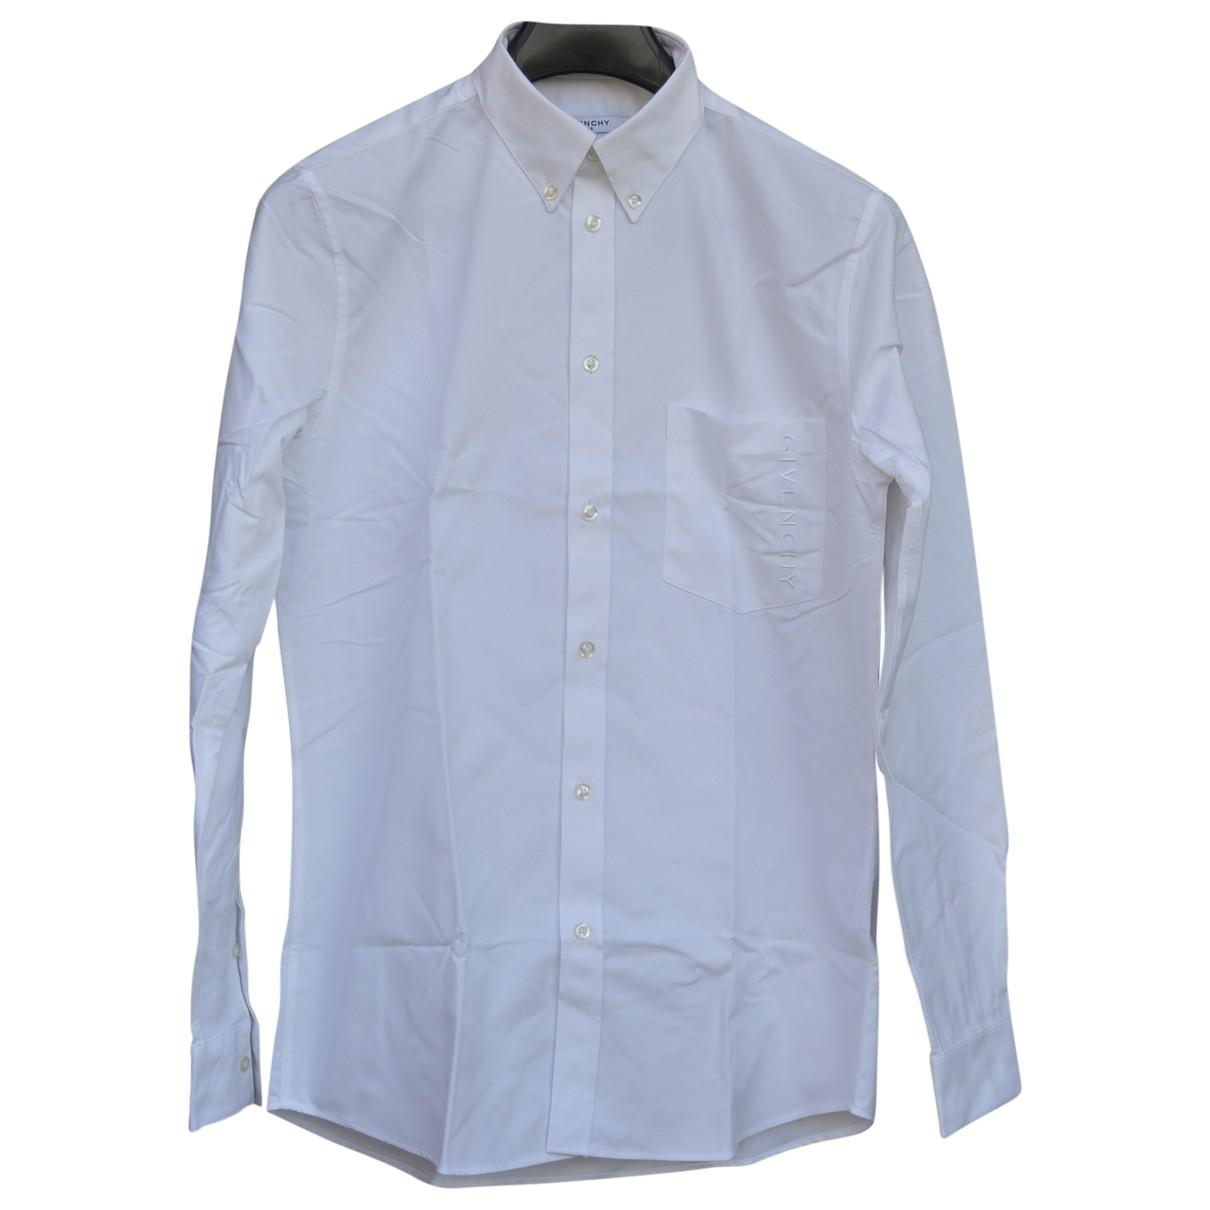 40dfc3b5d Givenchy Shirt in White for Men - Lyst